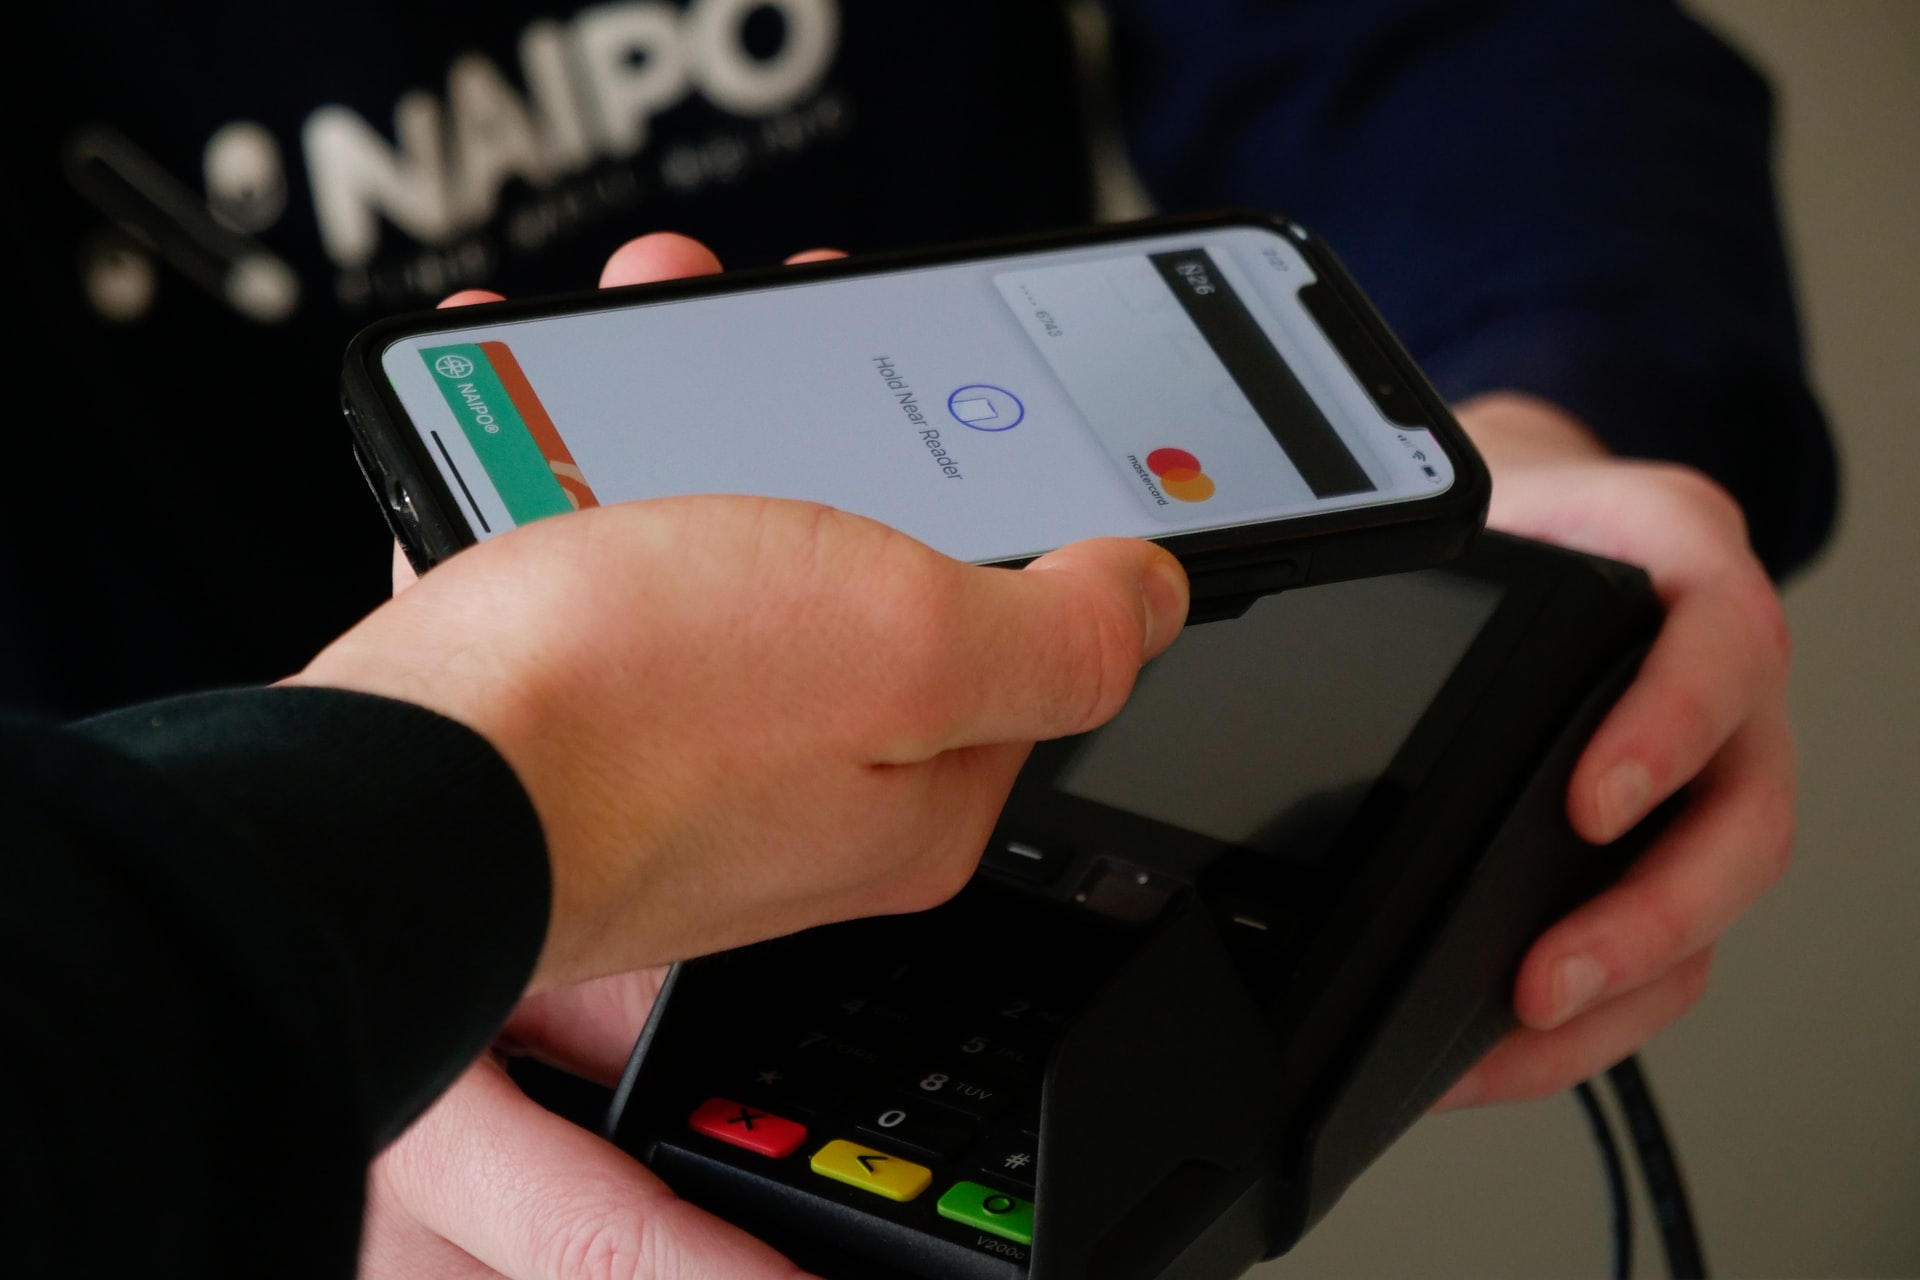 OnBuy: Mobile Payments Gains Ground, Cash Loses in the US